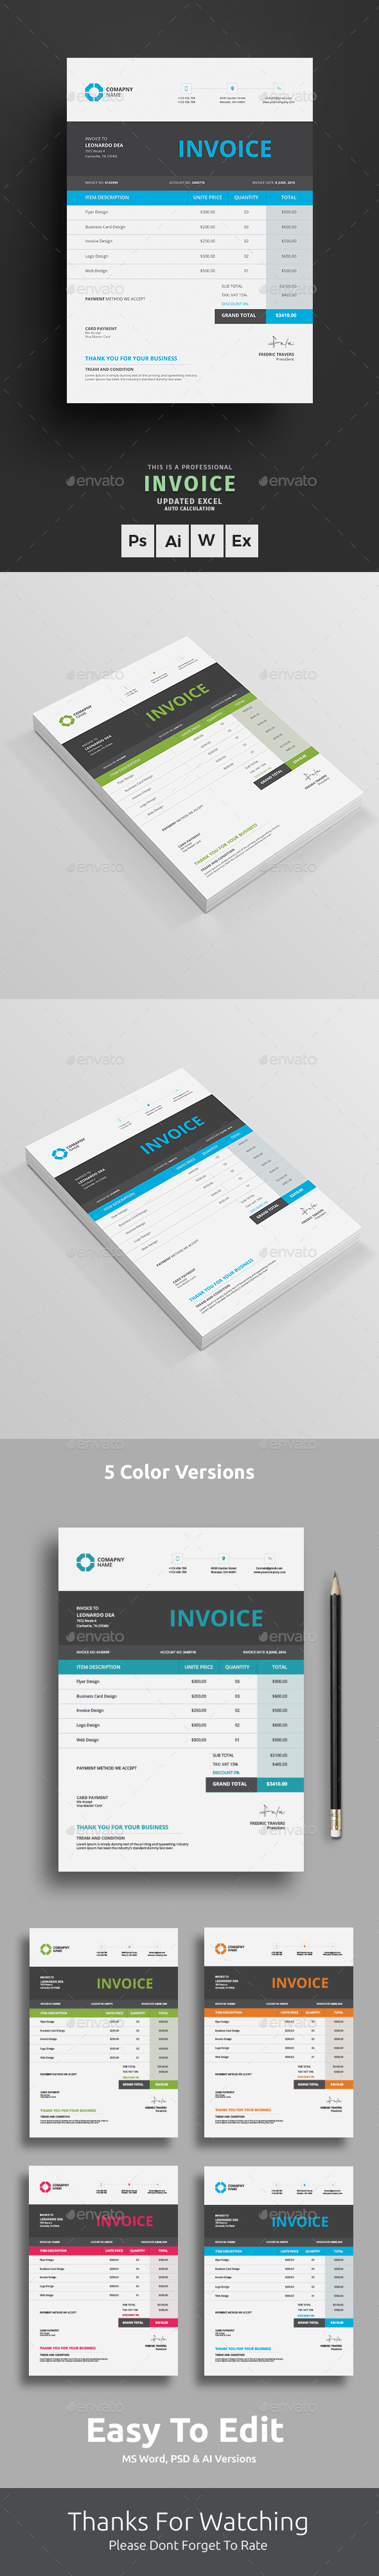 Invoice by themedevisers   GraphicRiver Invoice   Proposals   Invoices Stationery